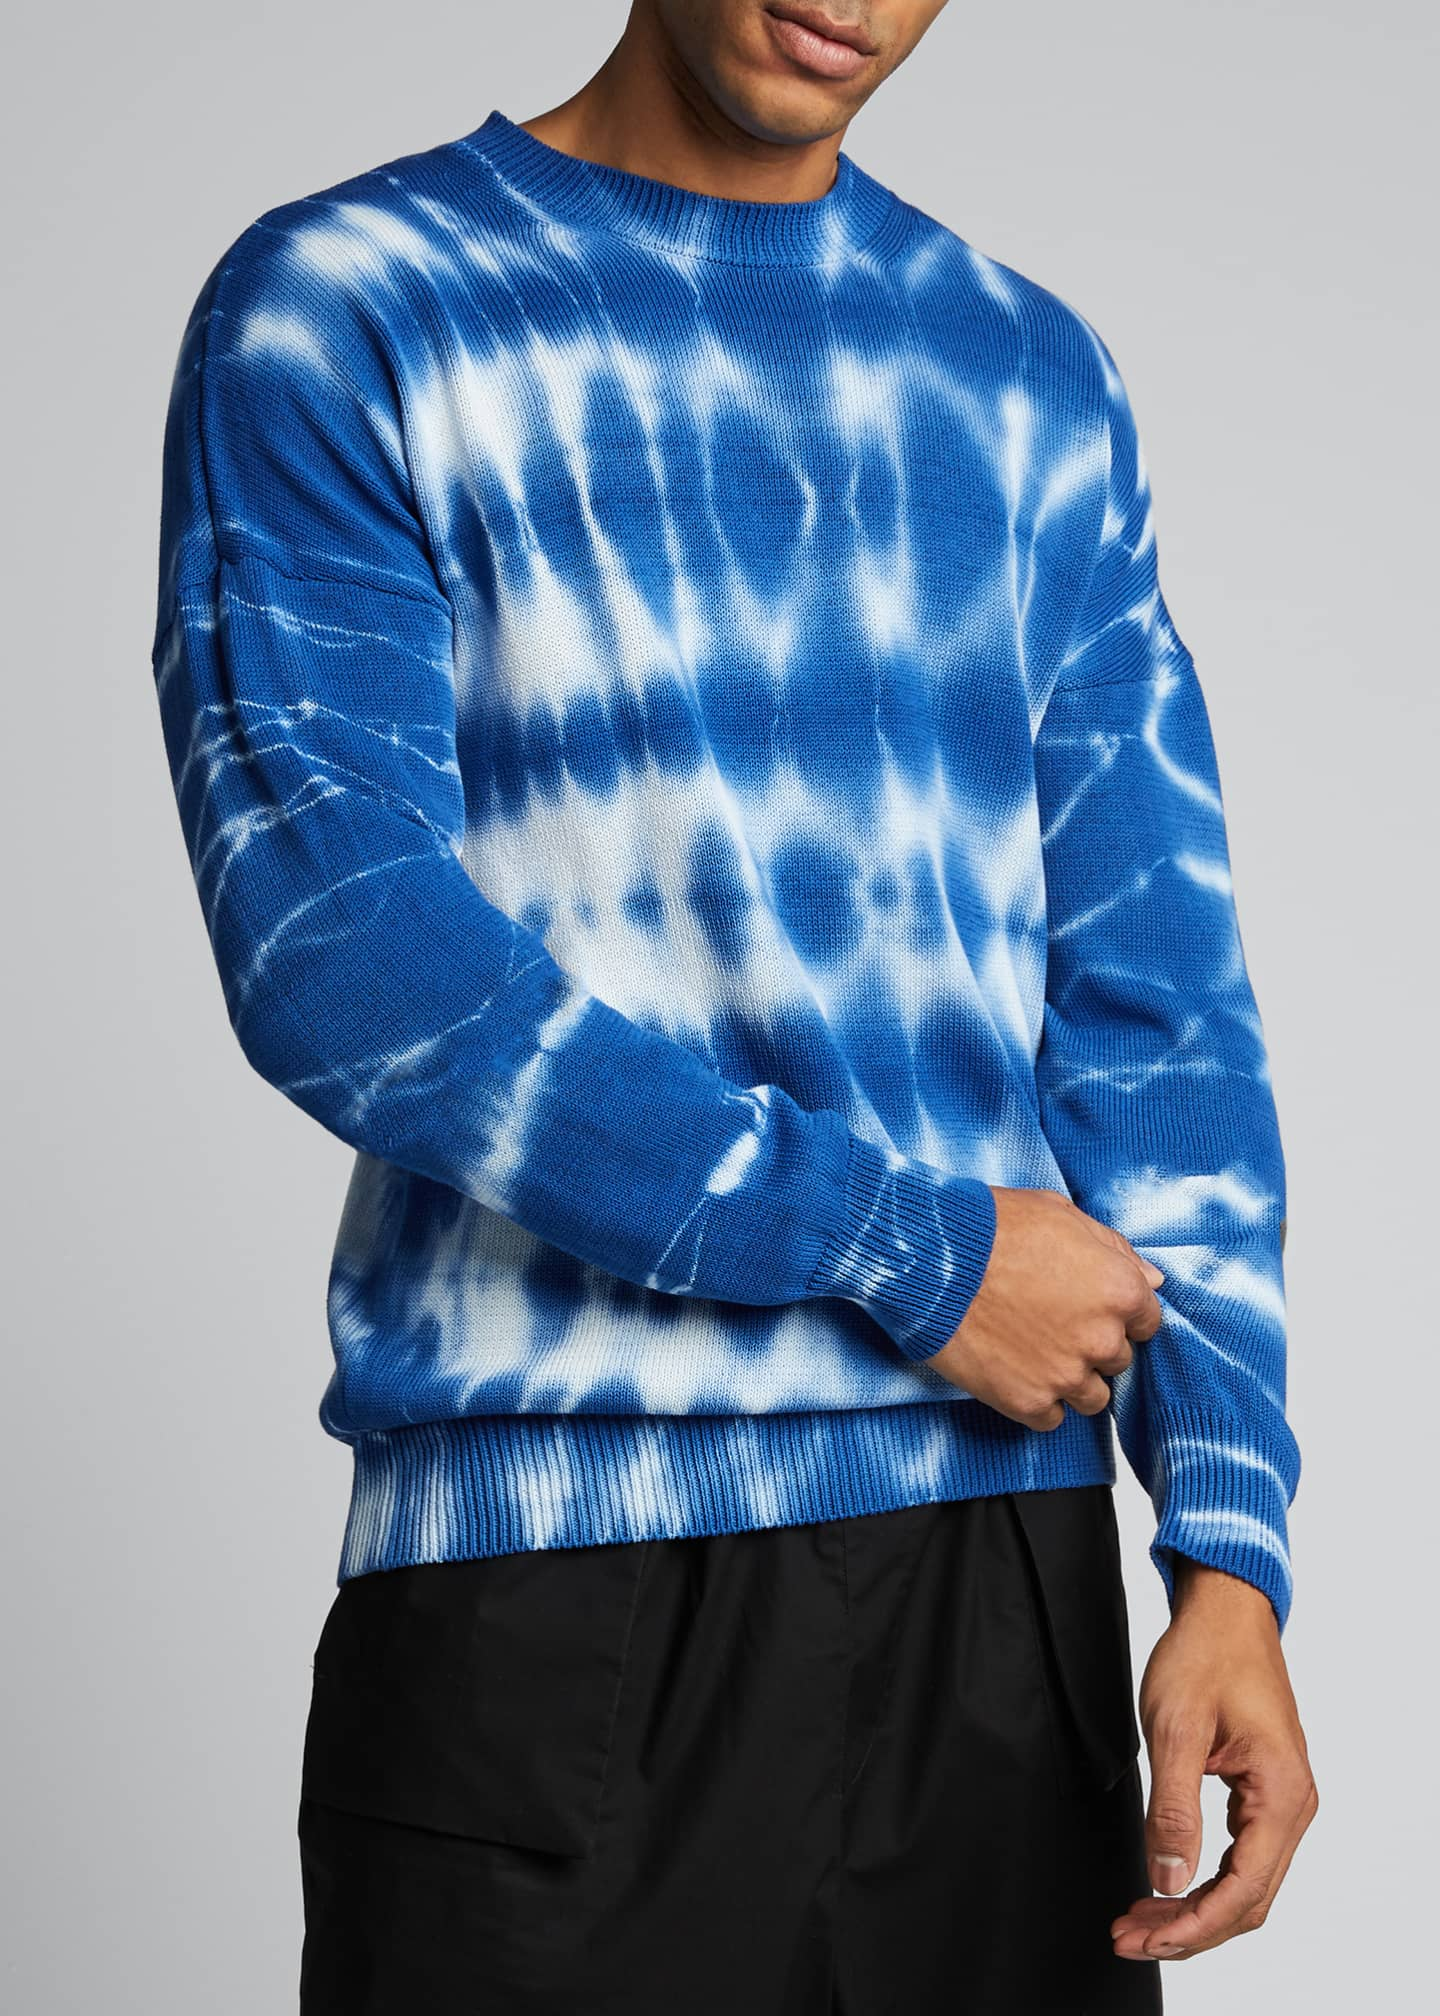 Image 3 of 5: Men's Tie-Dye Crewneck Sweater